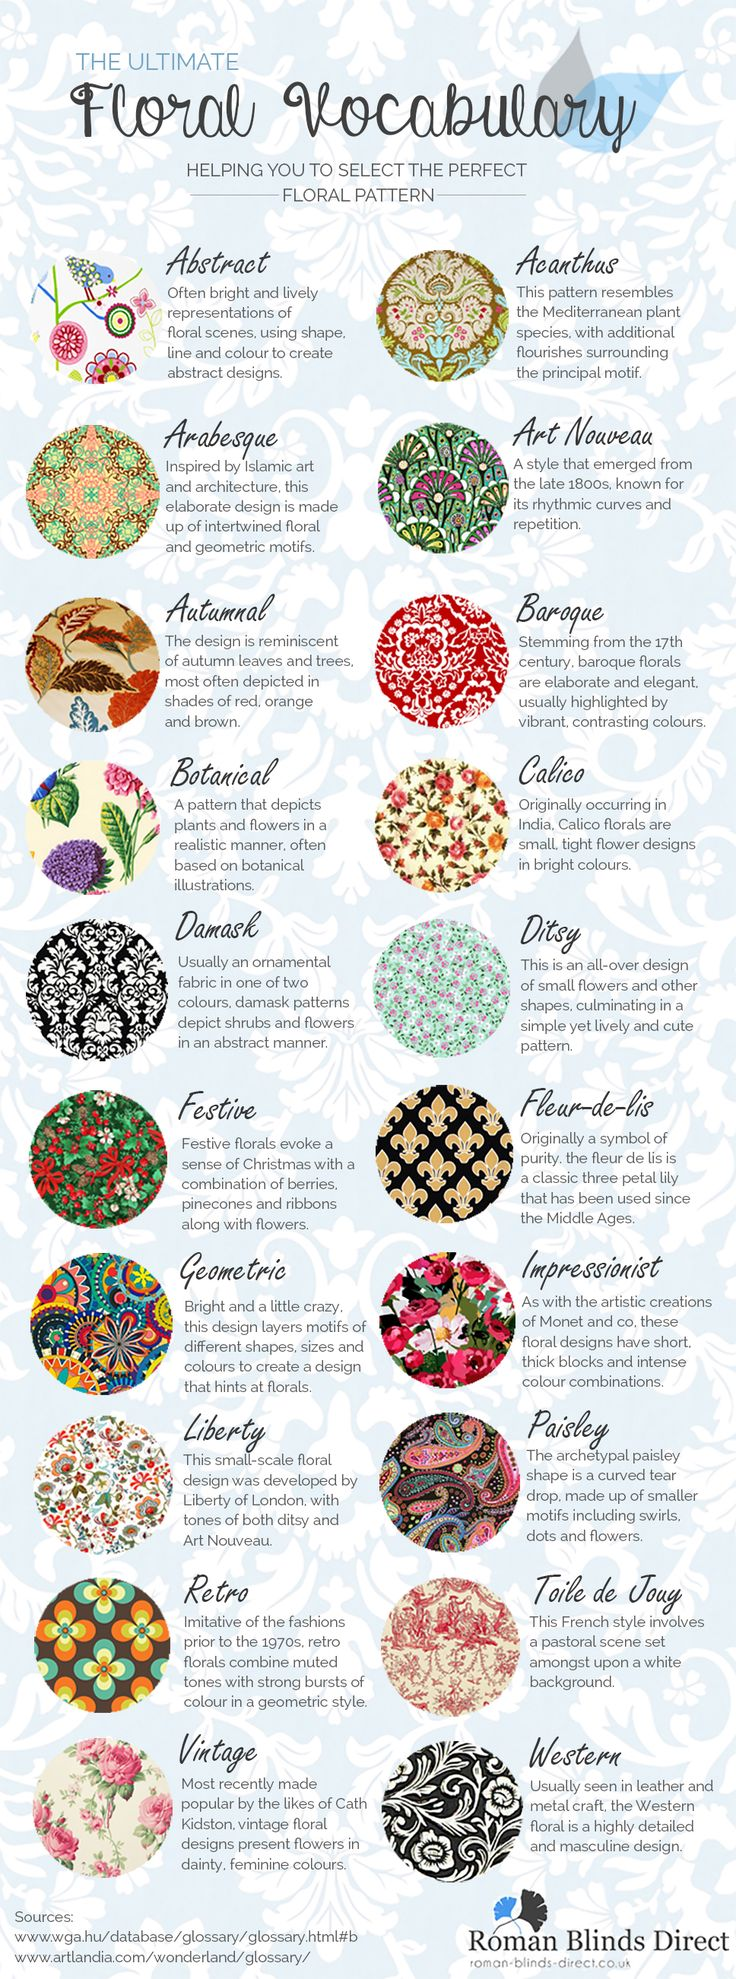 The Ultimate Floral Vocabulary | Visual.ly